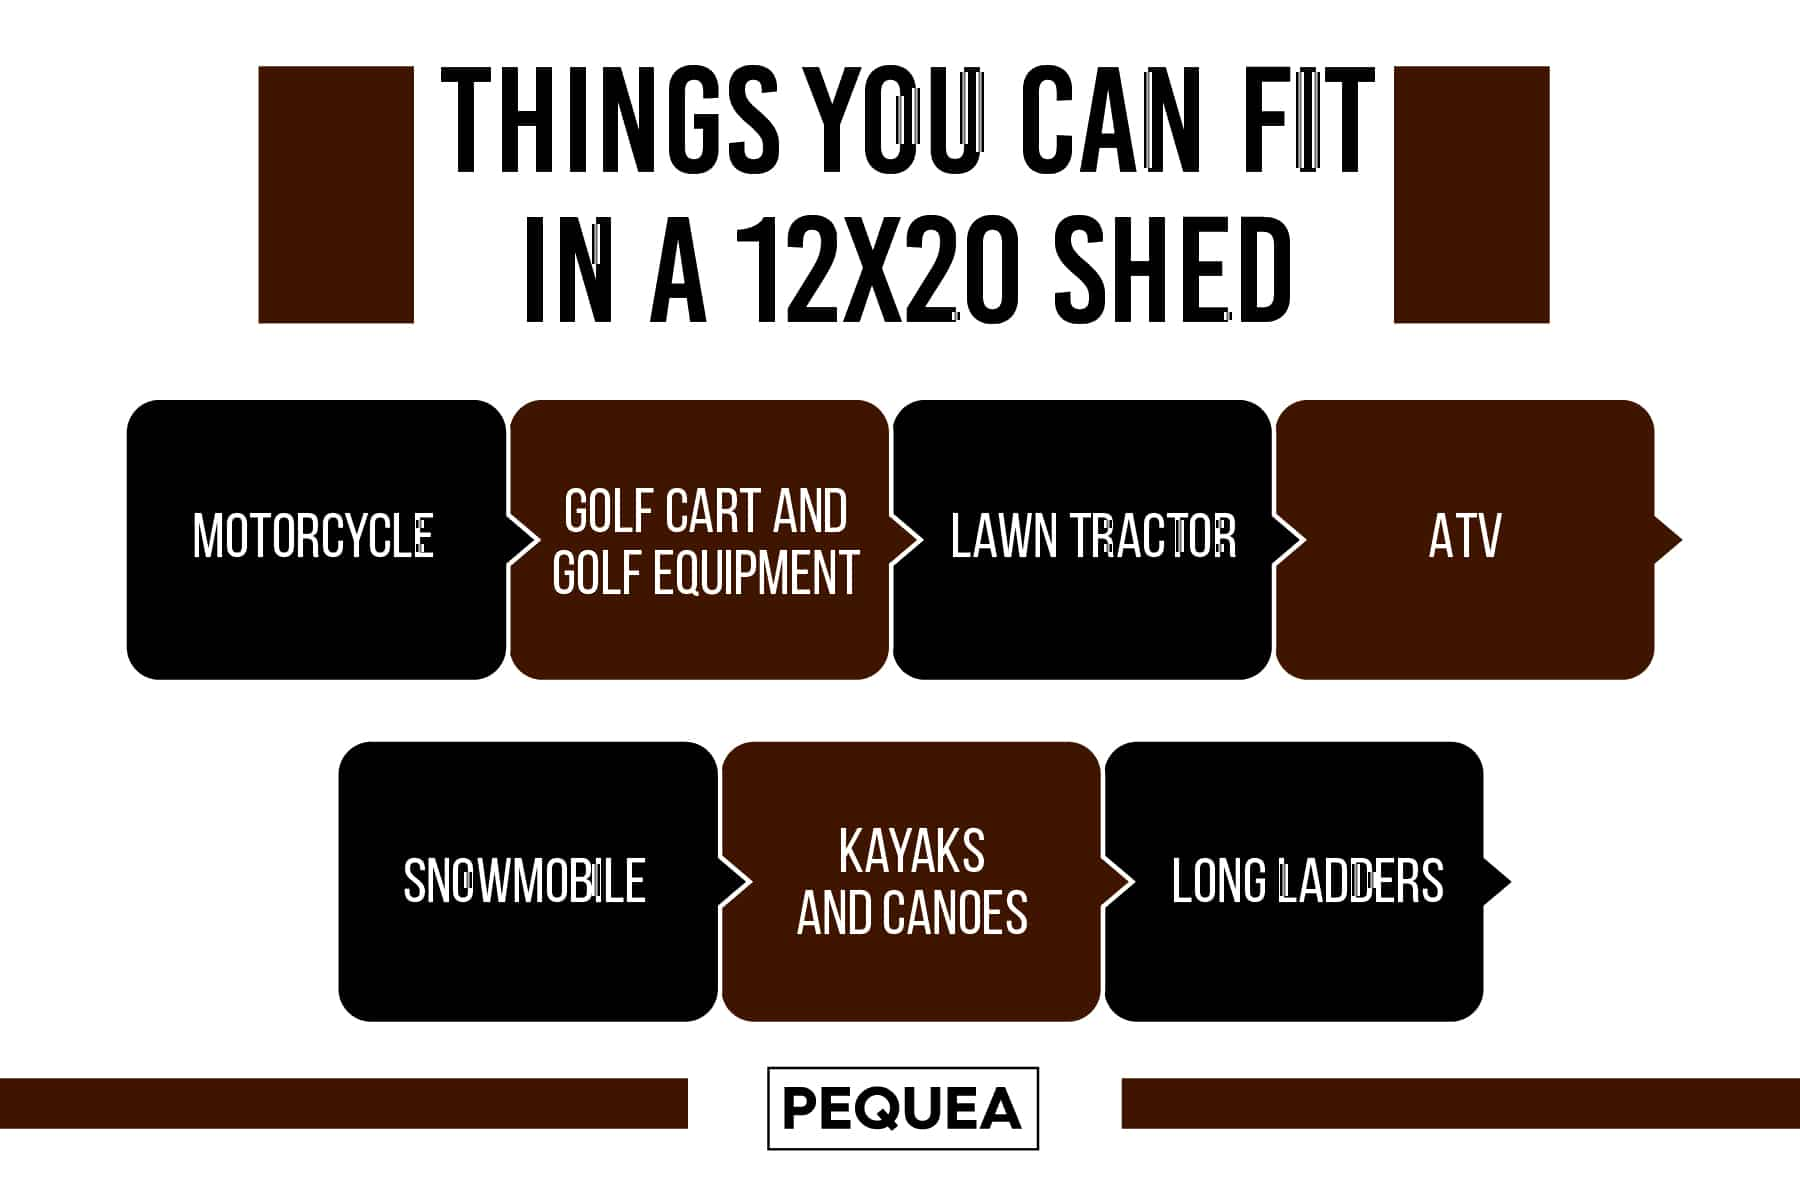 things you can fit in a 12x20 shed